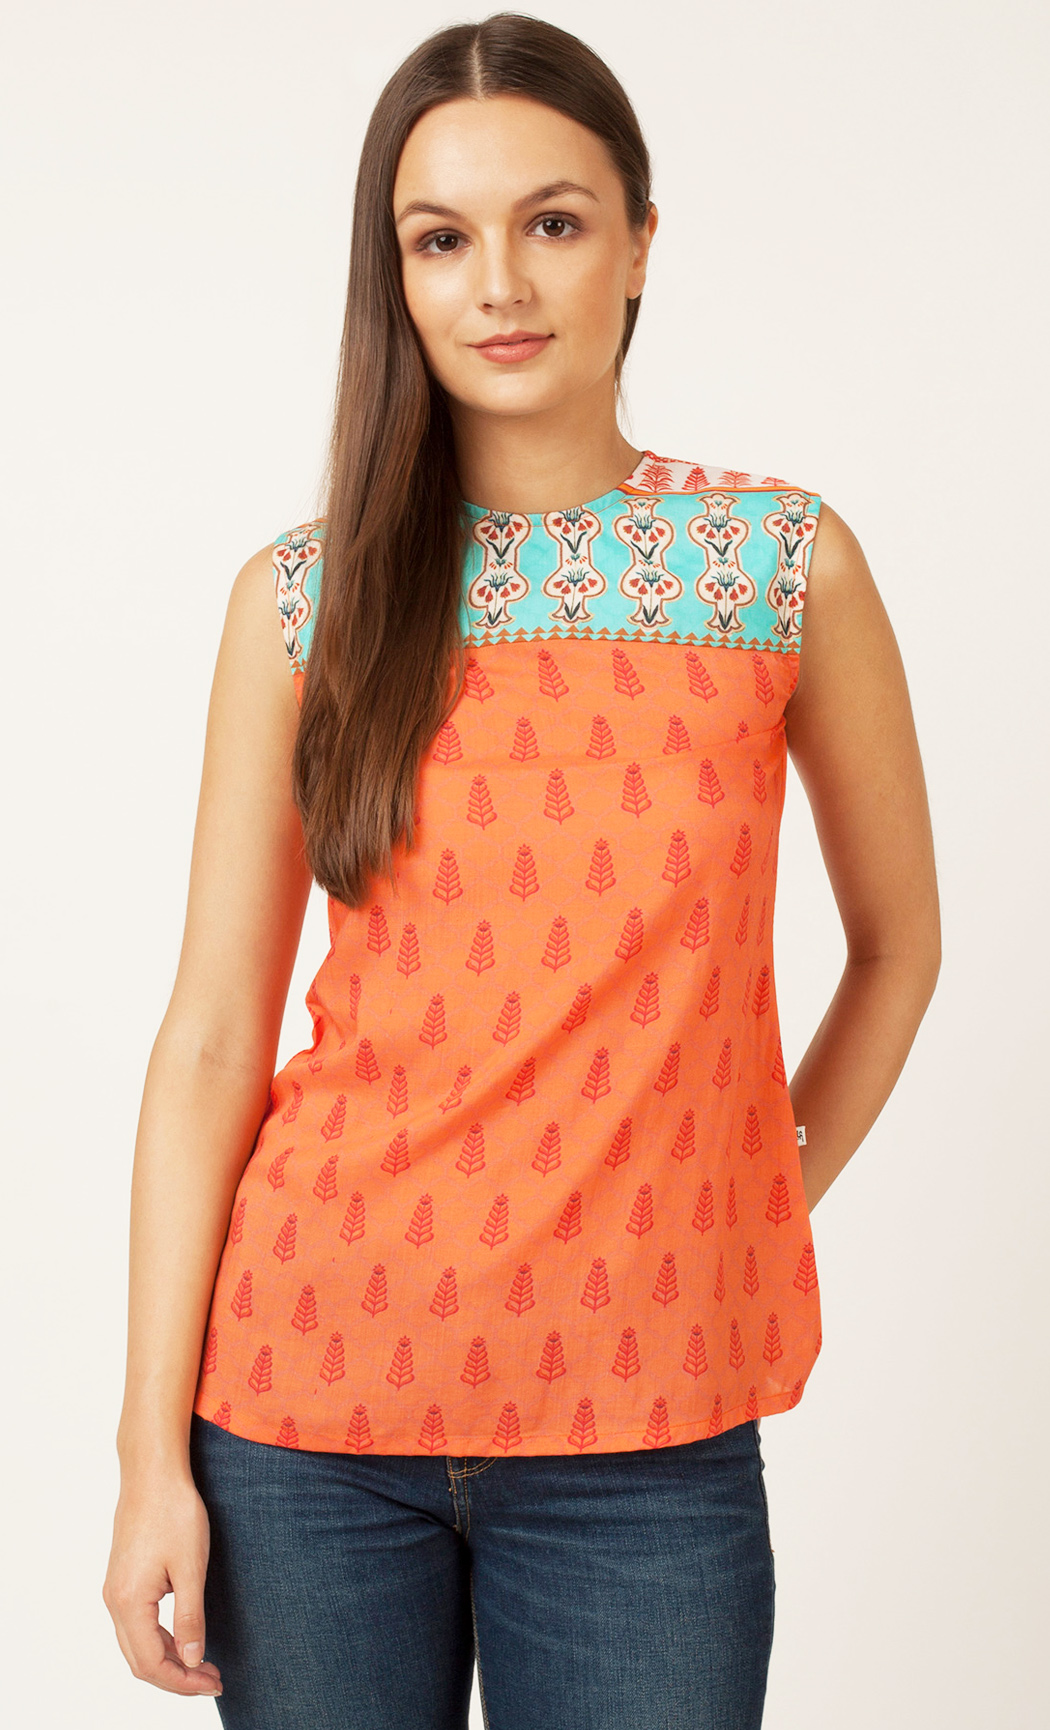 Peach Printed Backless Top. Buy Online